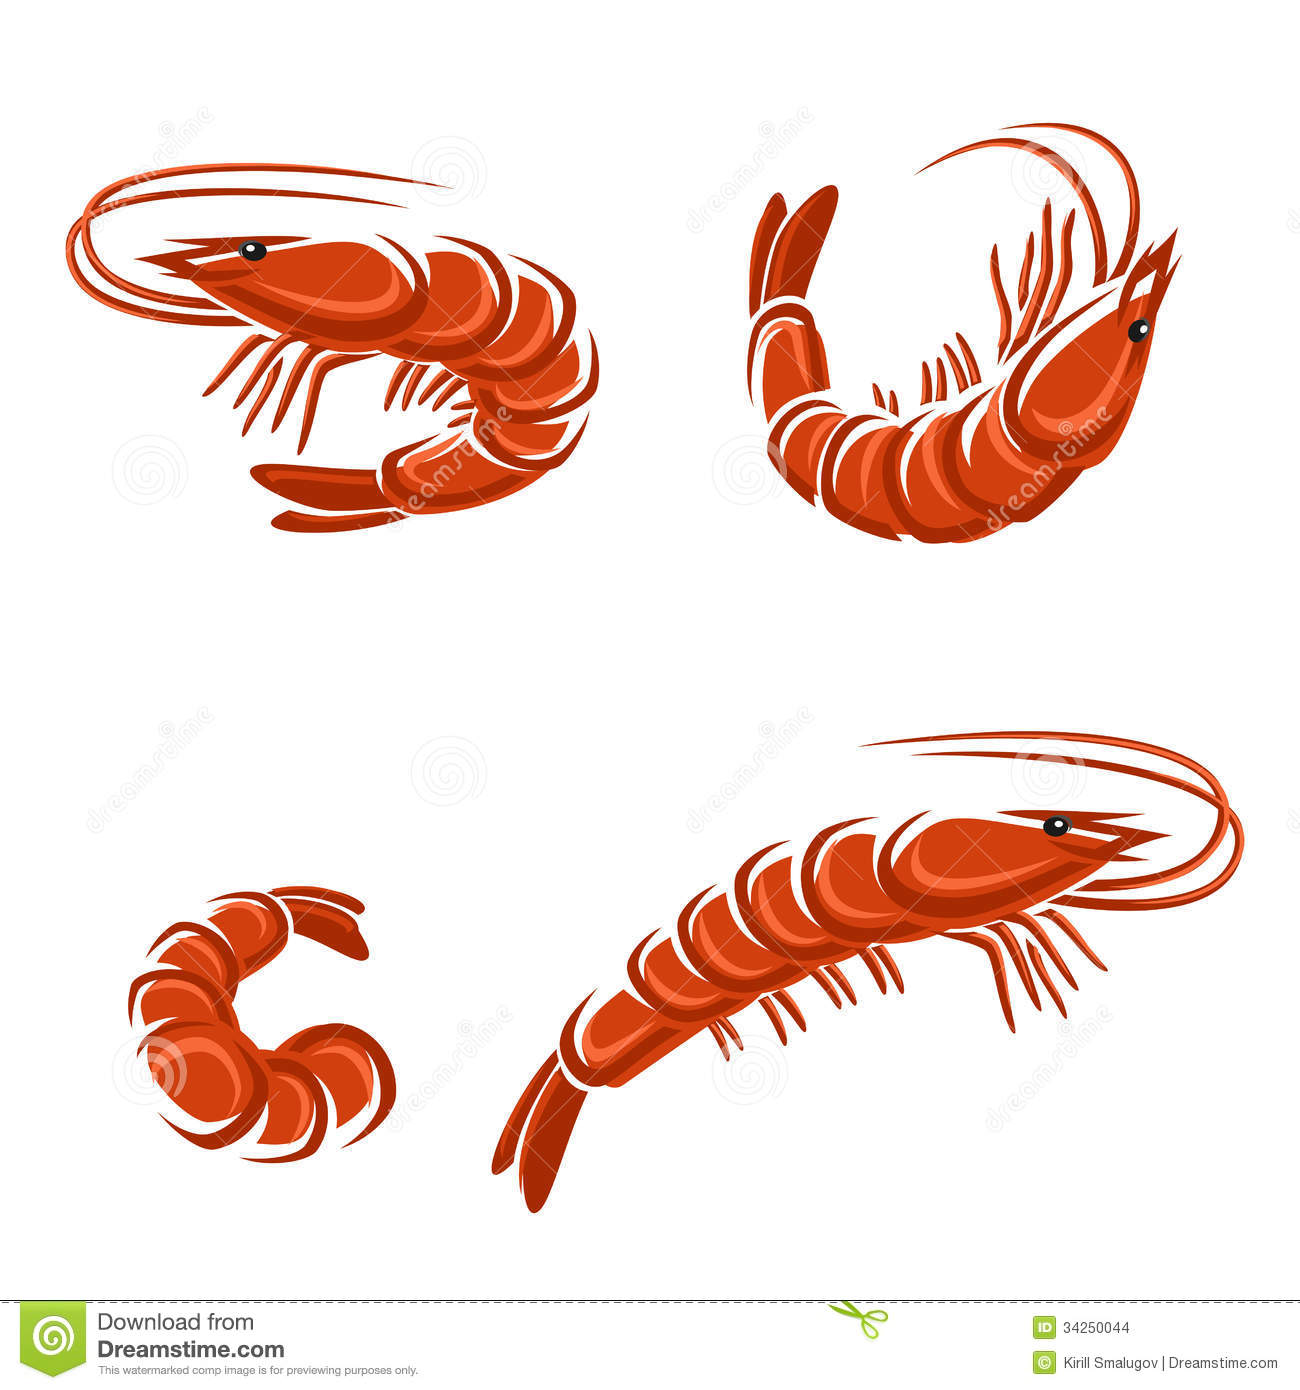 Shrimp set. Vector illustration. This is file of EPS8 format.